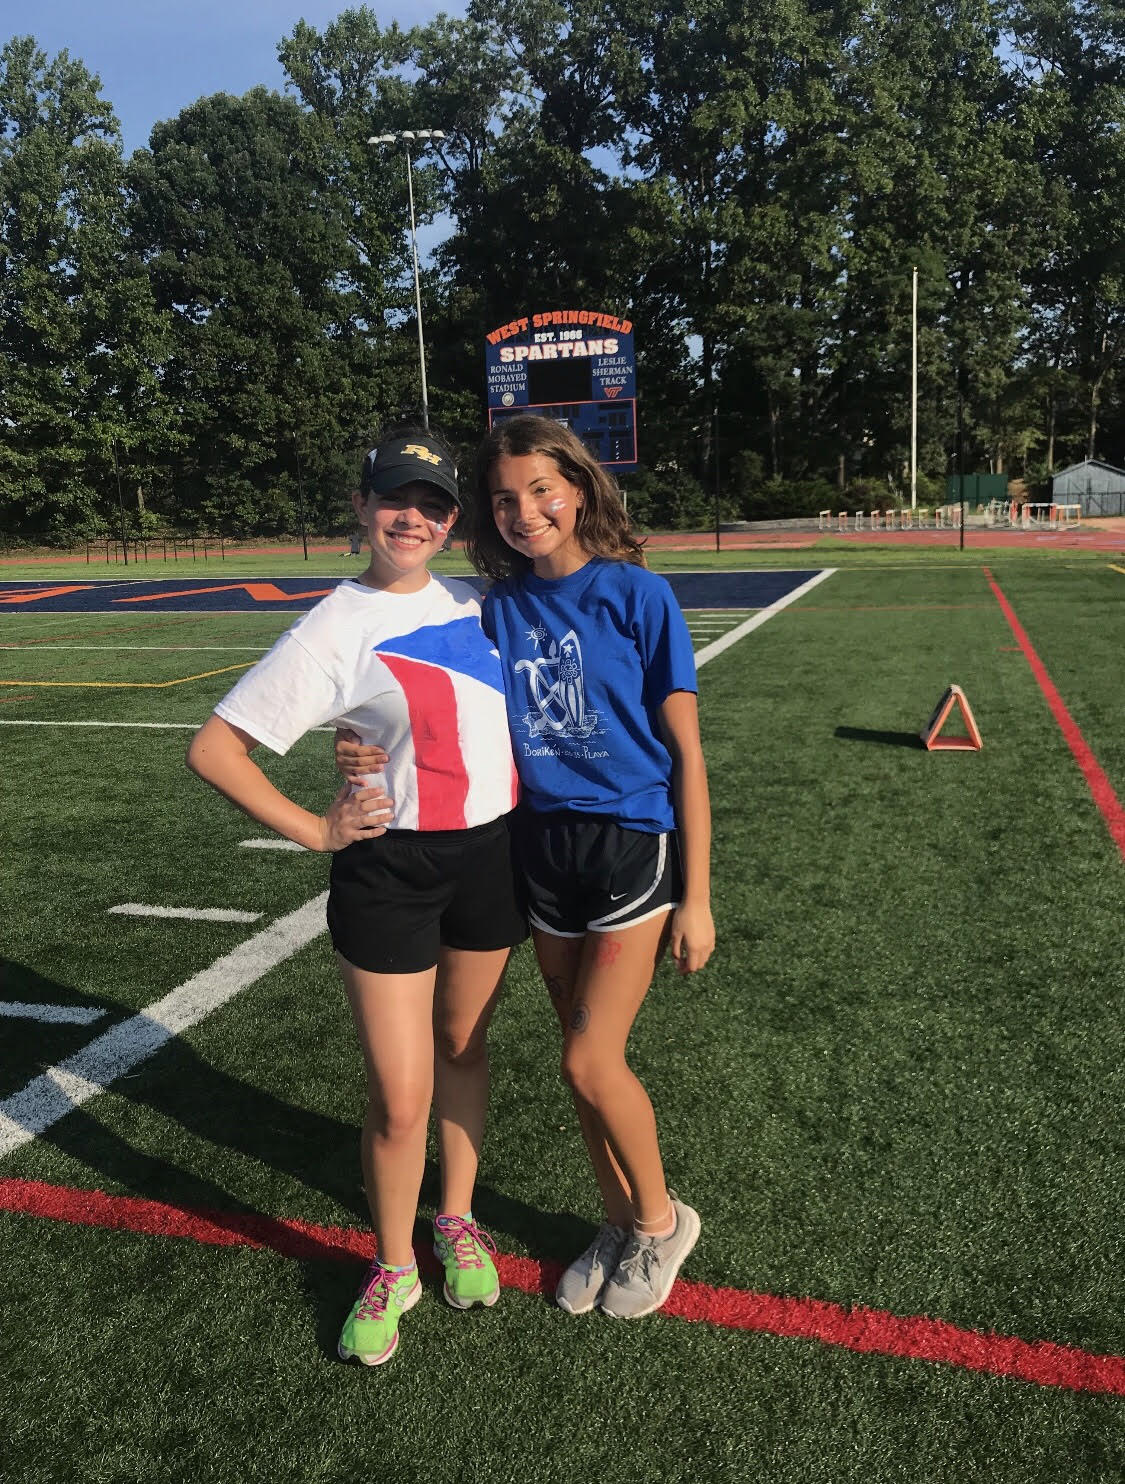 Juniors Eliza Snipes (left) and Vivian Santiago (right) on the football field after practice. Santiago, who is on the Color Guard, and Snipes, who is in the Marching Band, spent over eight hours each day practicing in the hot August heat.